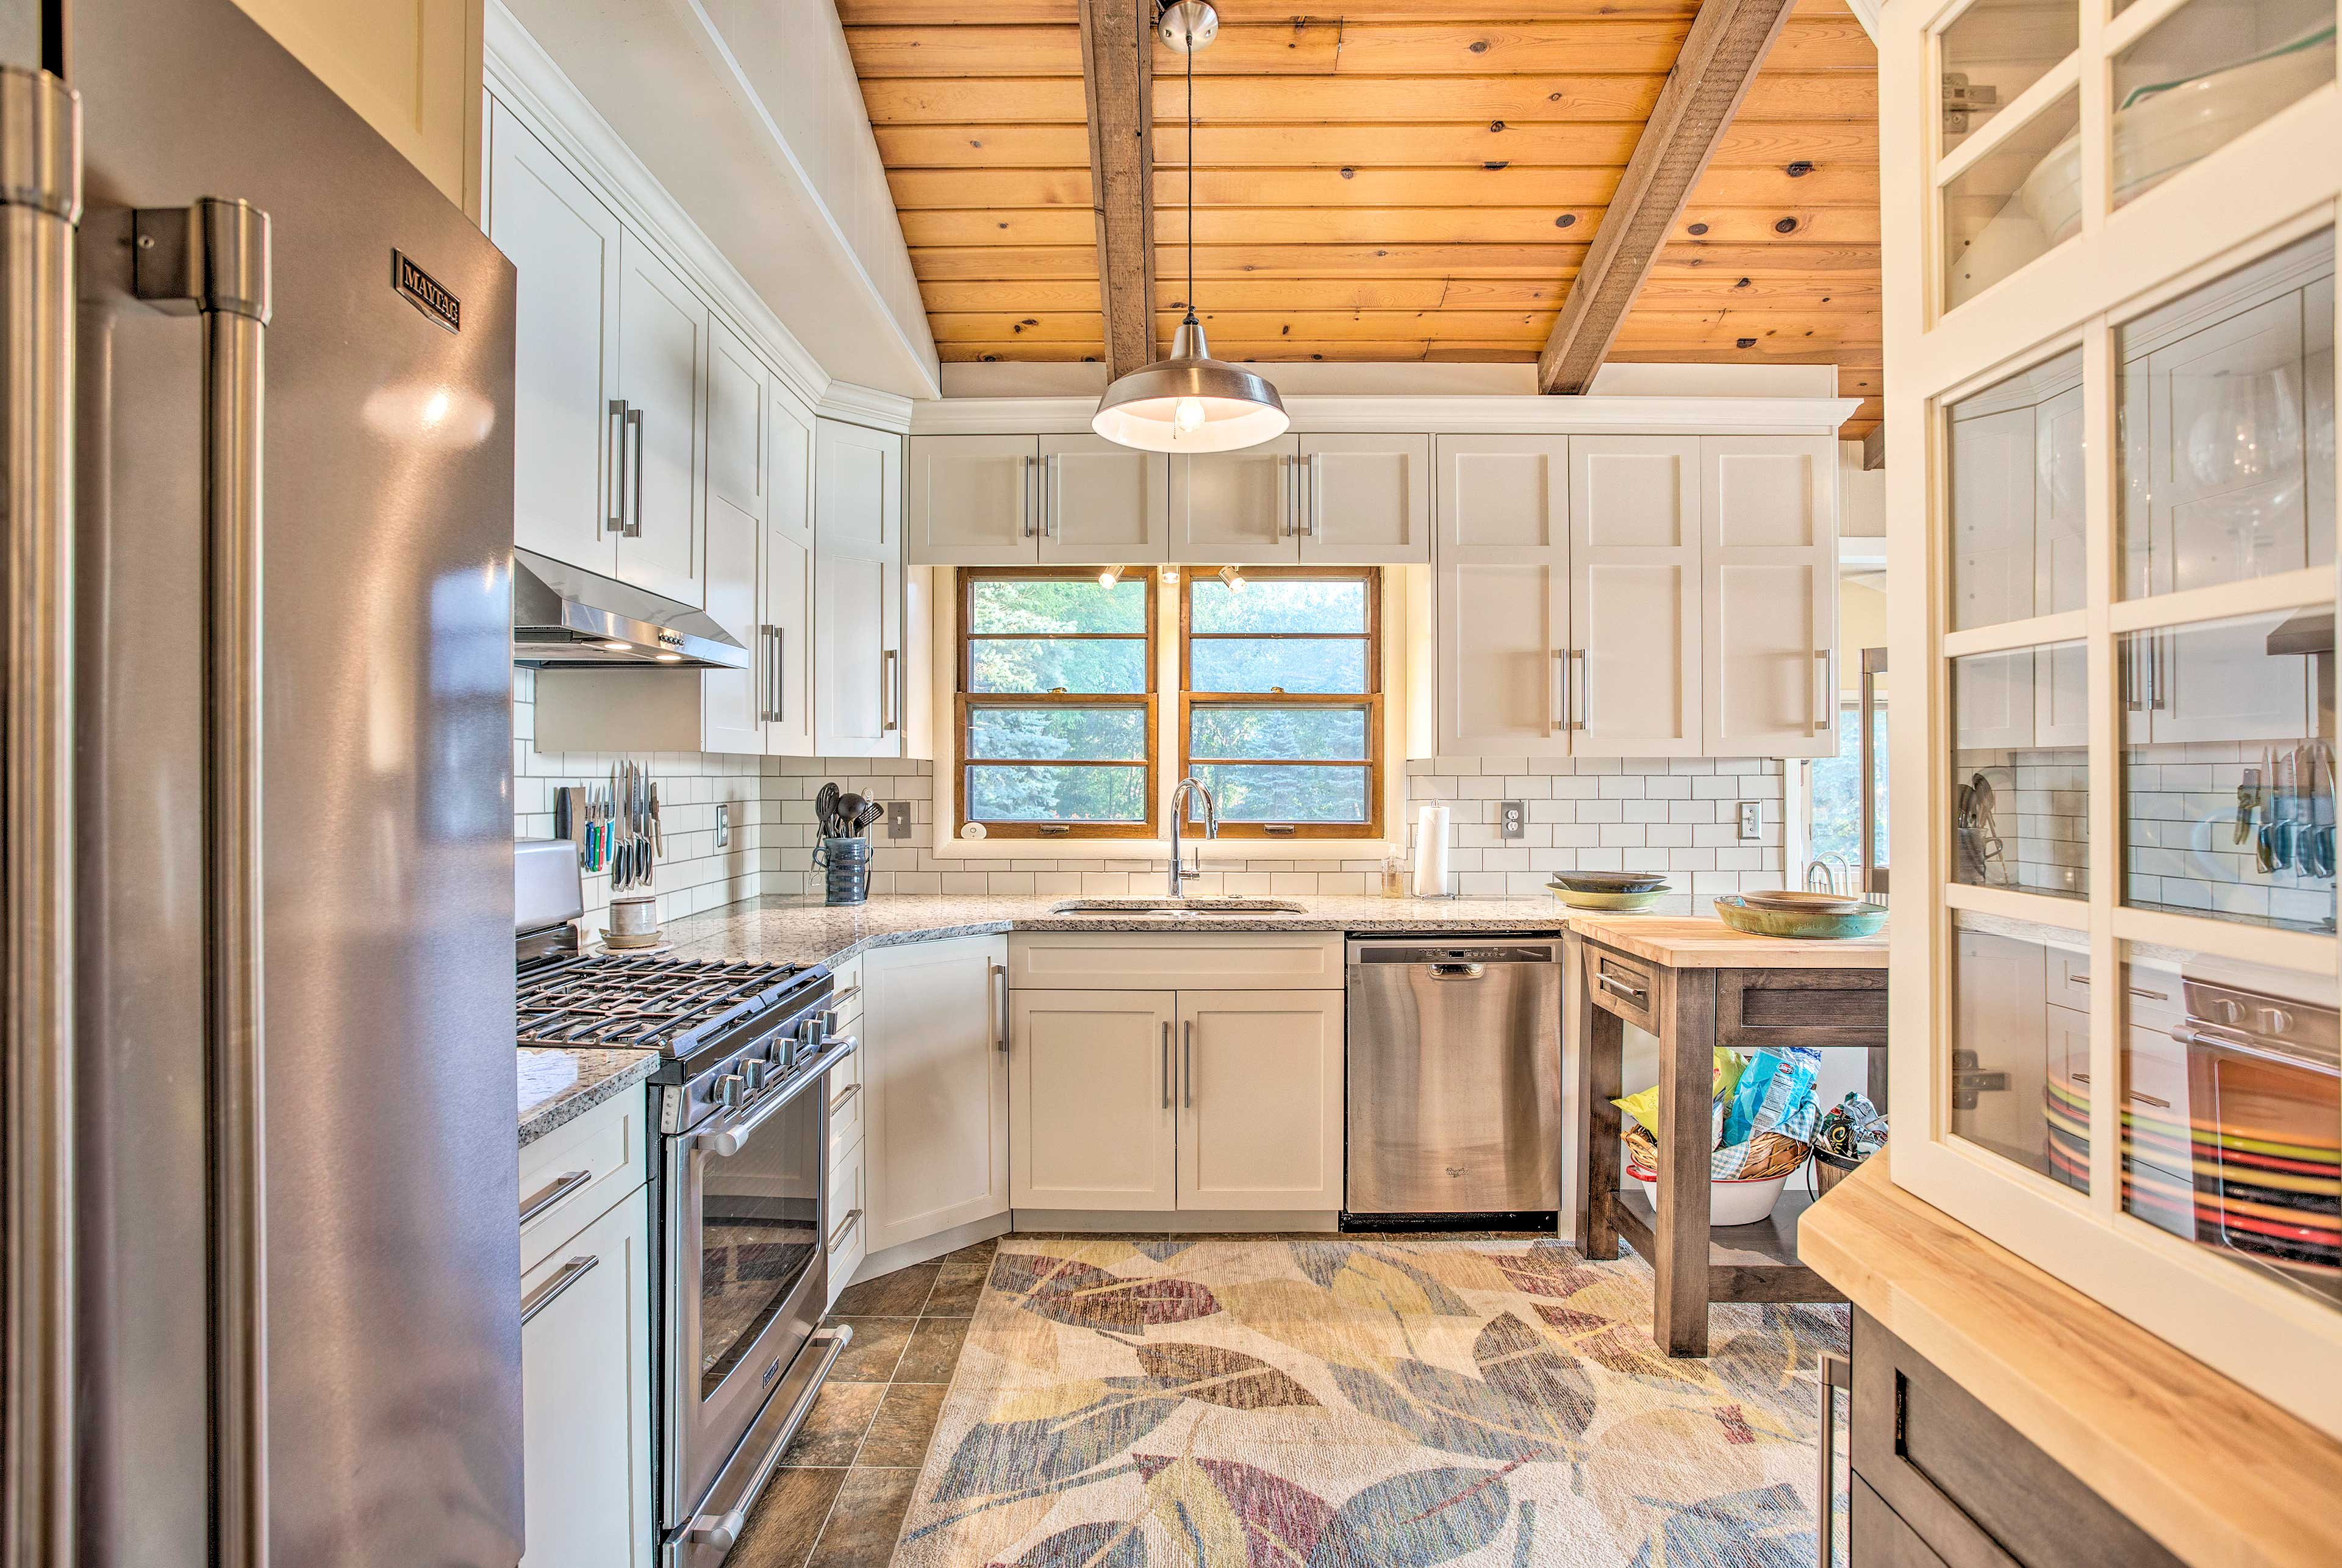 The gourmet kitchen is fully equipped with stainless steel appliances.